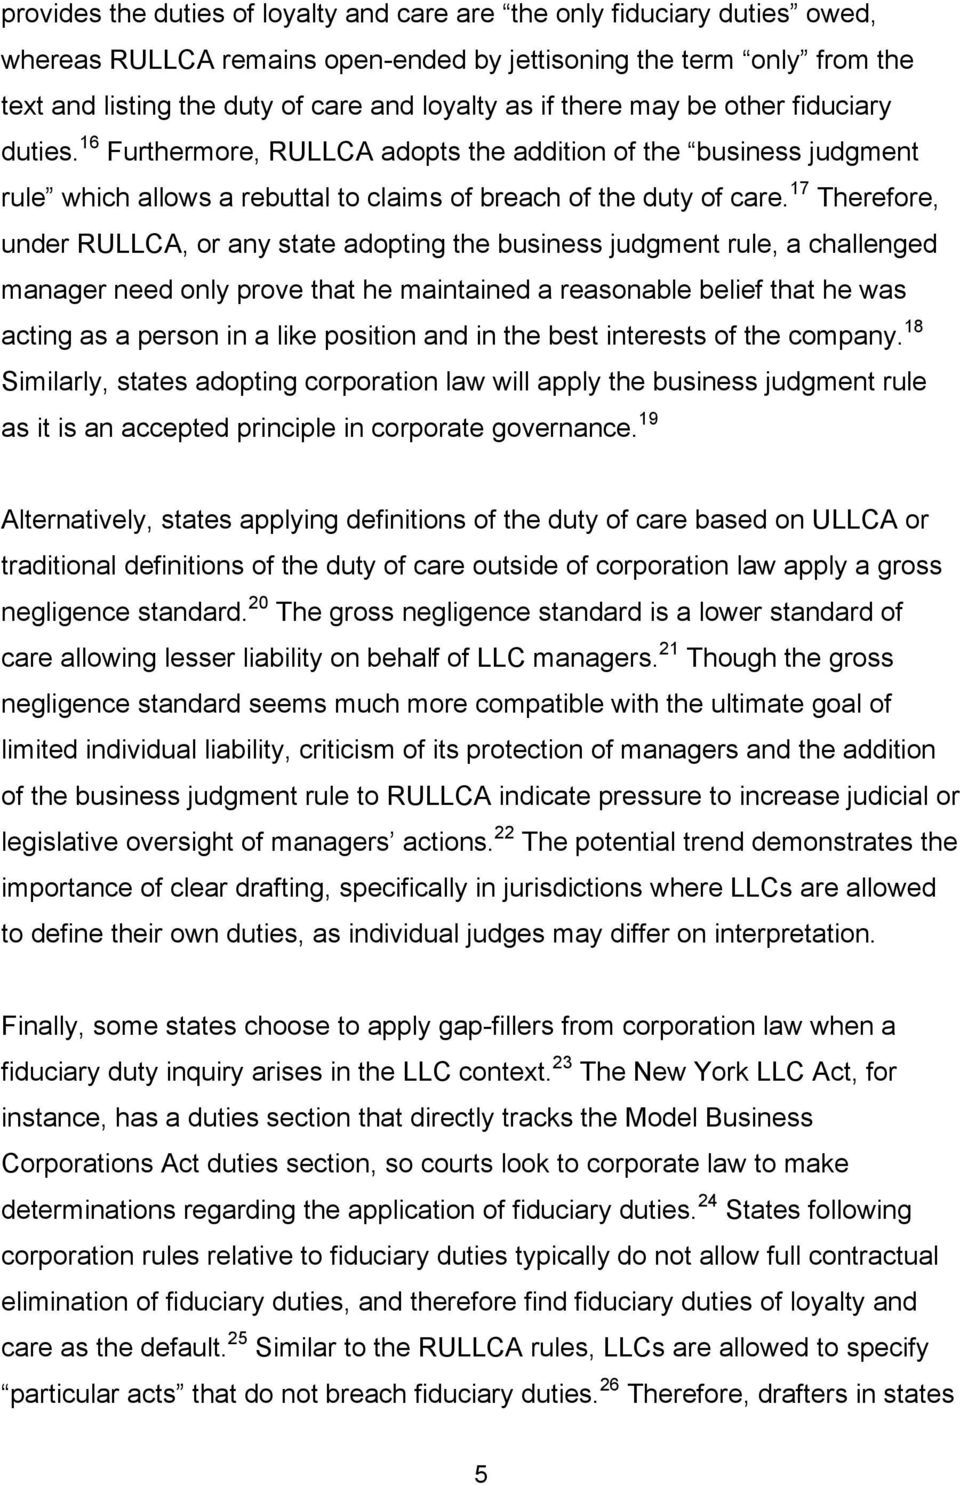 17 Therefore, under RULLCA, or any state adopting the business judgment rule, a challenged manager need only prove that he maintained a reasonable belief that he was acting as a person in a like